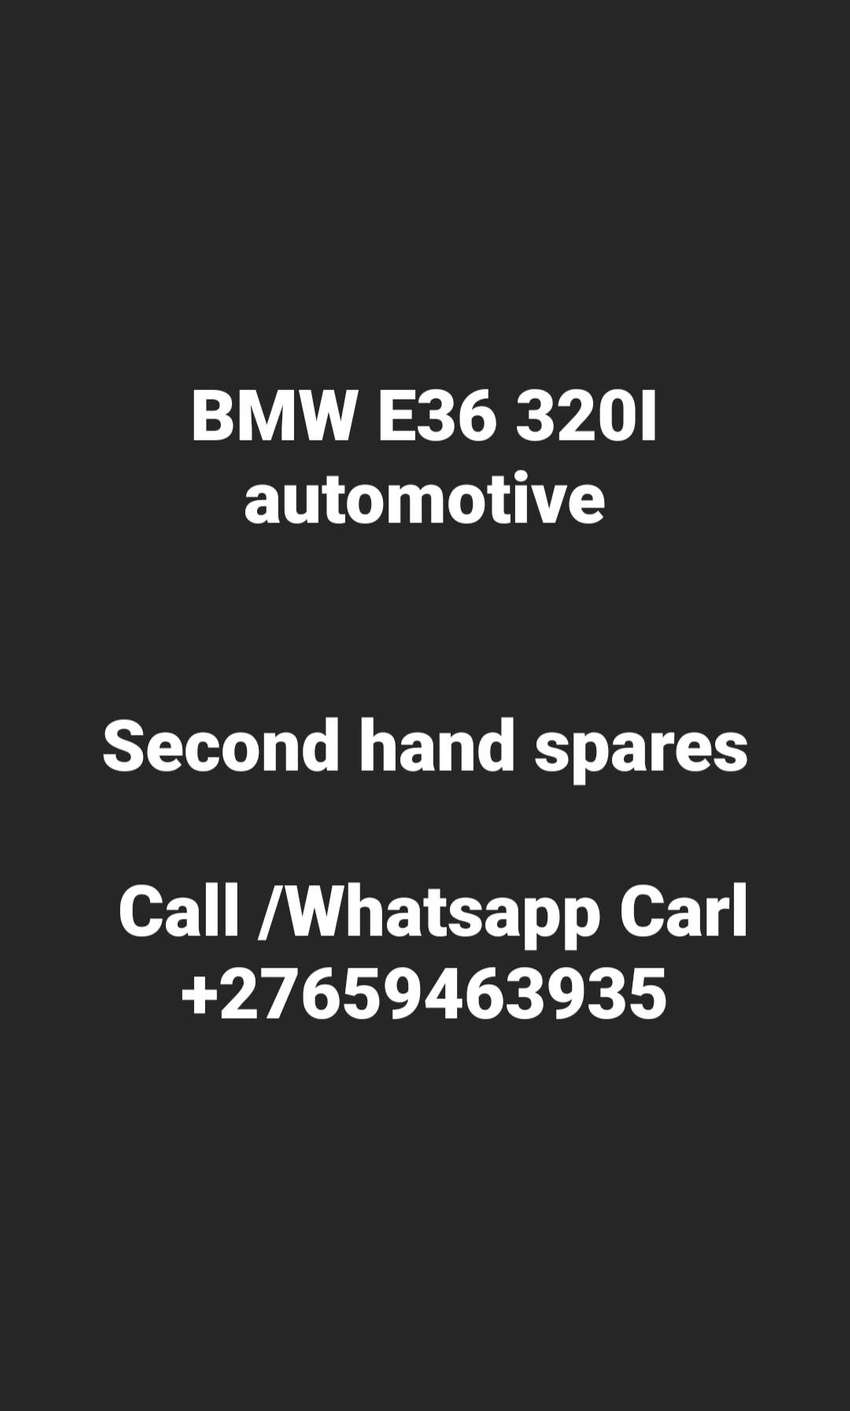 Bmw e36 320i automatic stripping 0